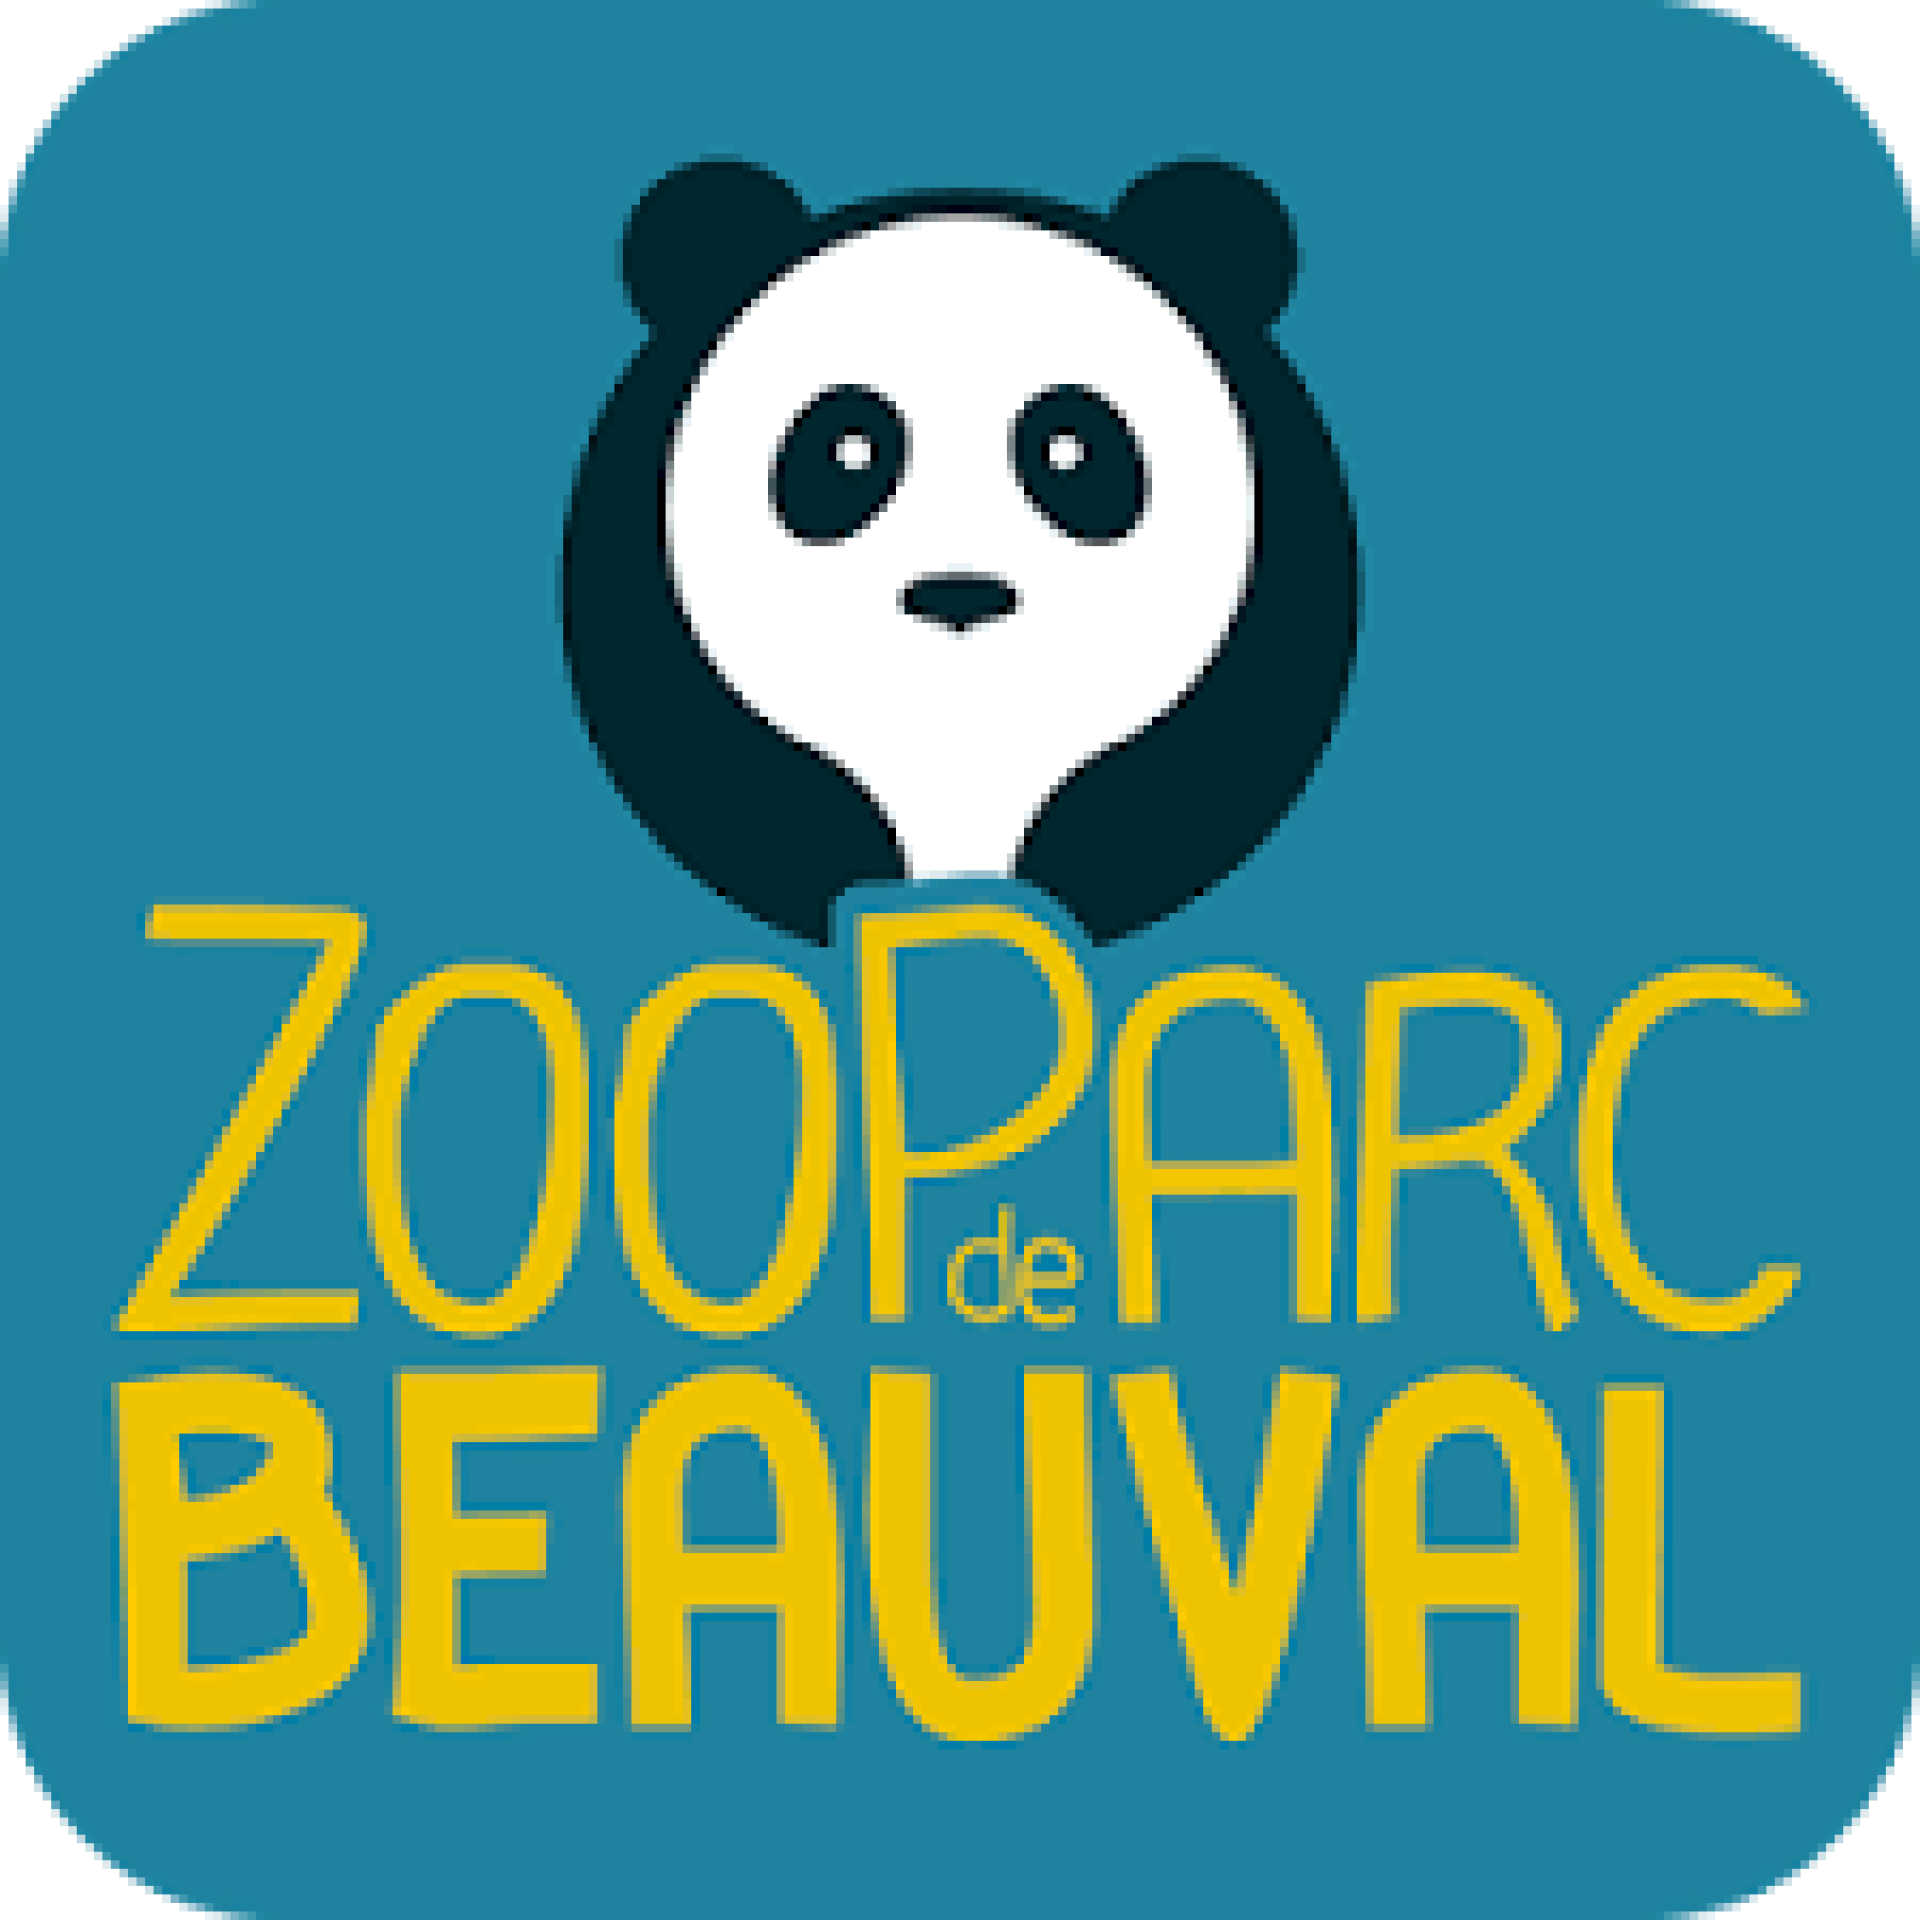 Logo Beauval Rond